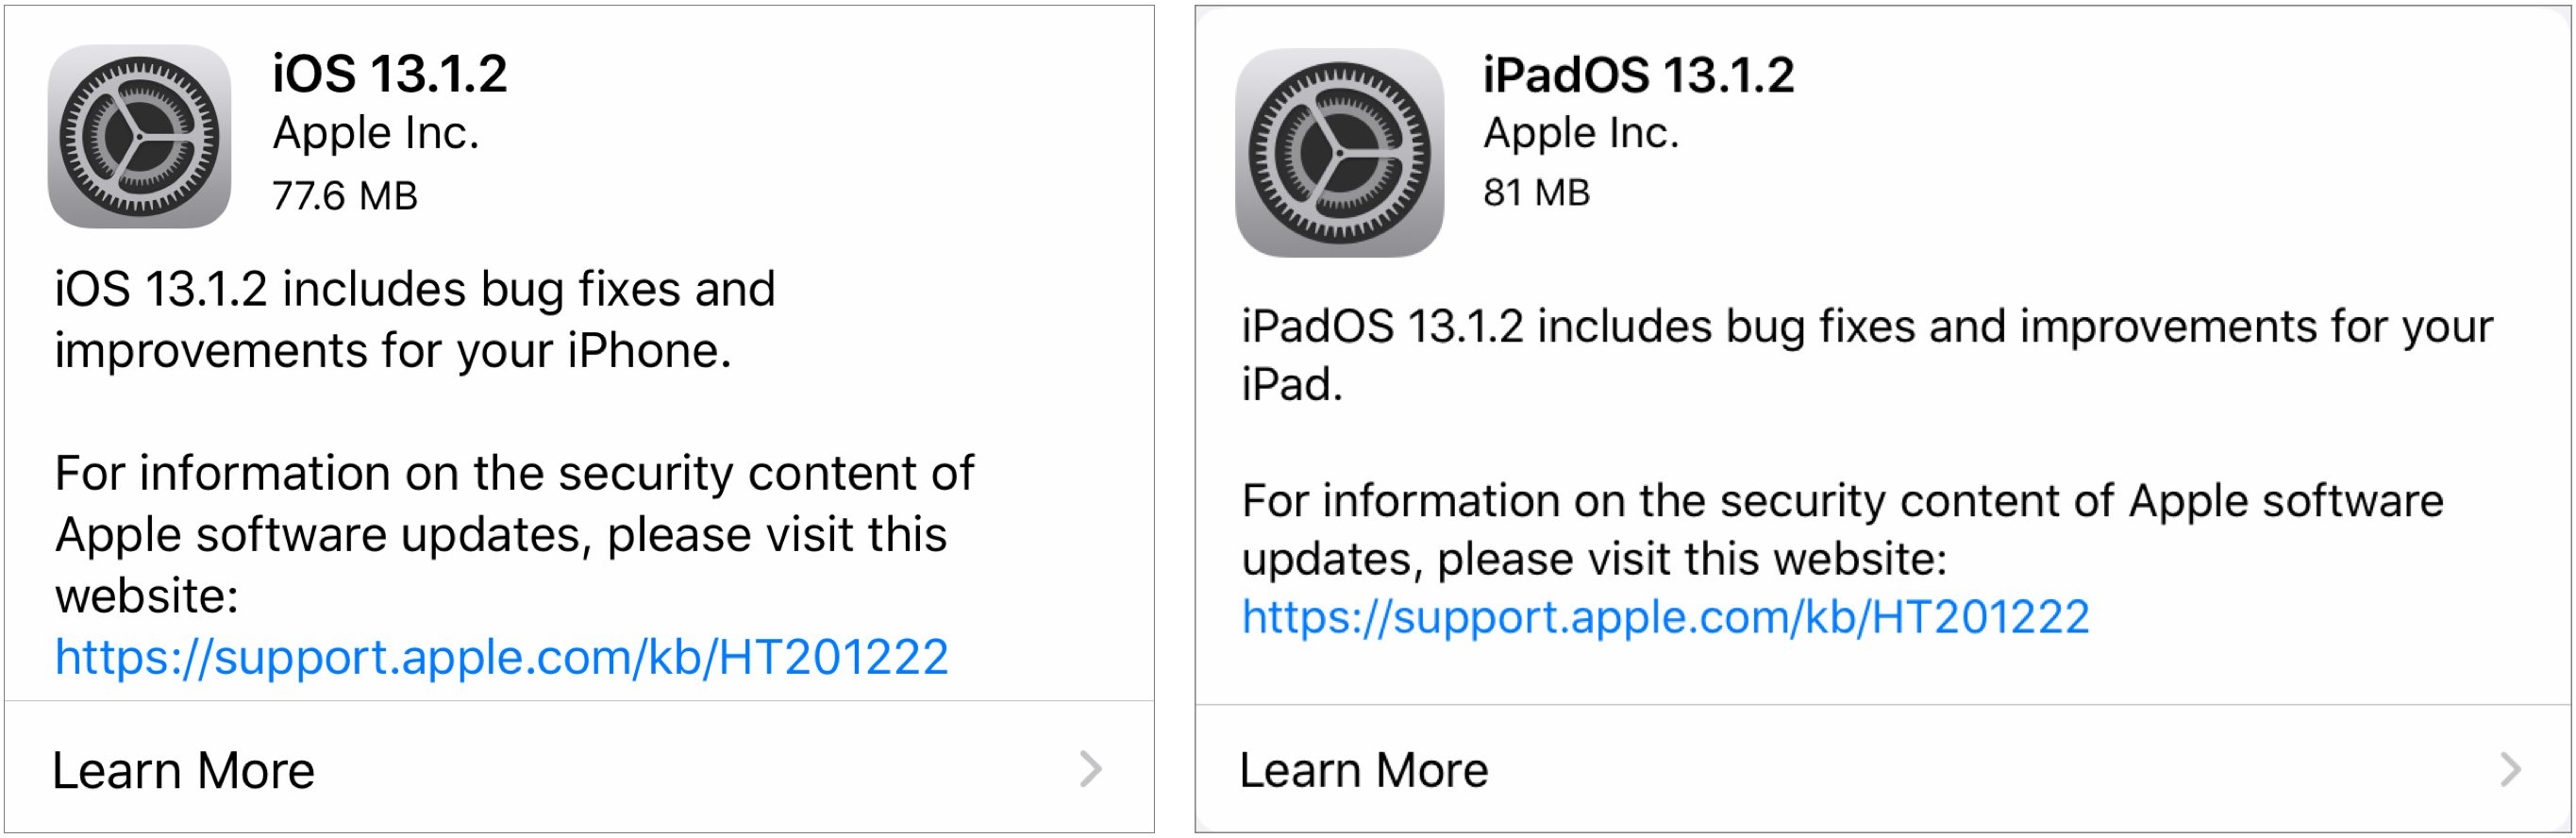 iOS and iPadOS 13.1.2 release notes